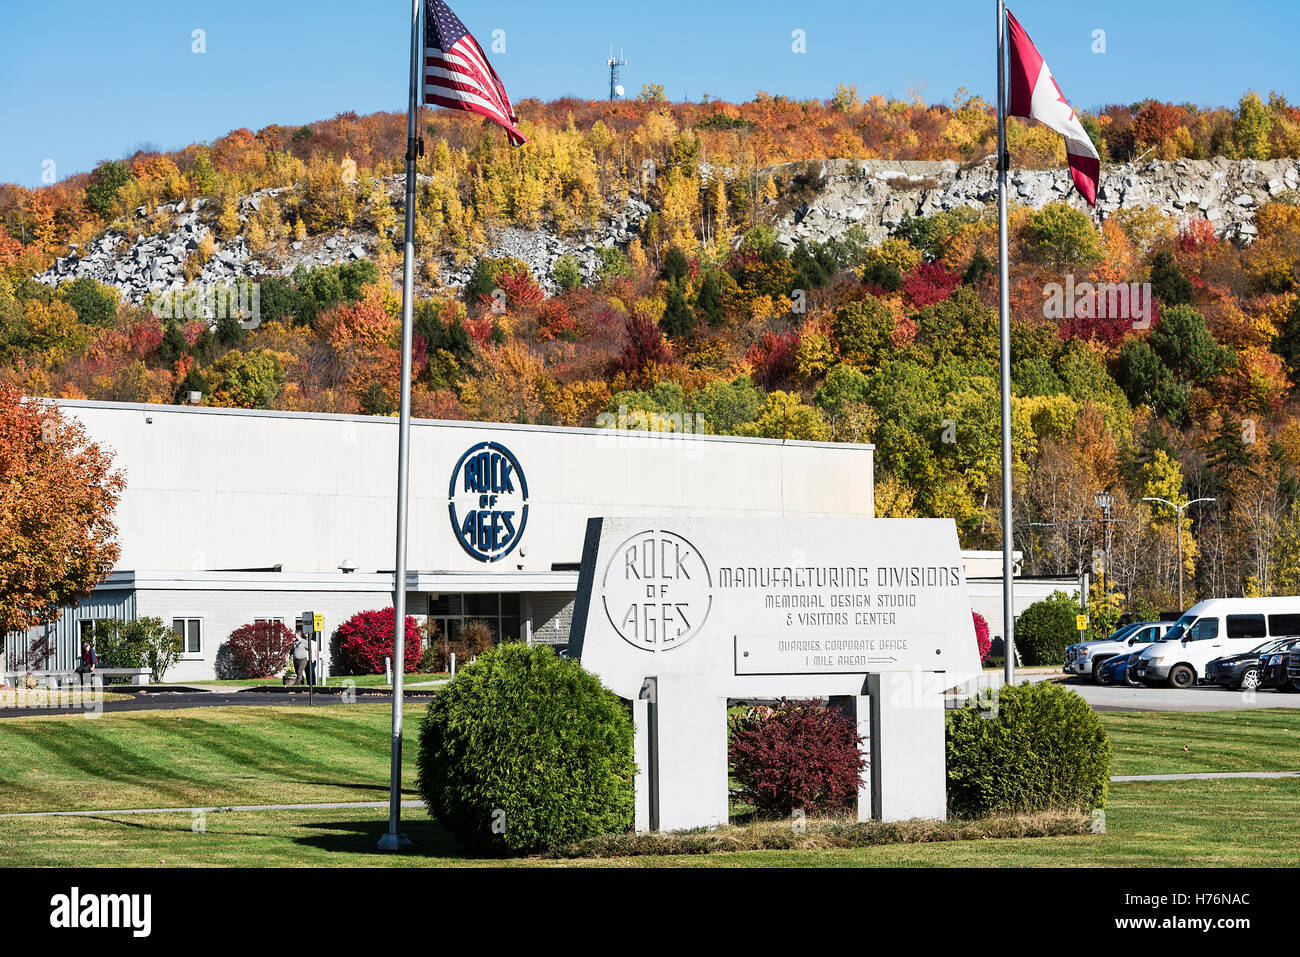 Rock of Ages corporate office, Barre, Vermont, USA. - Stock Image